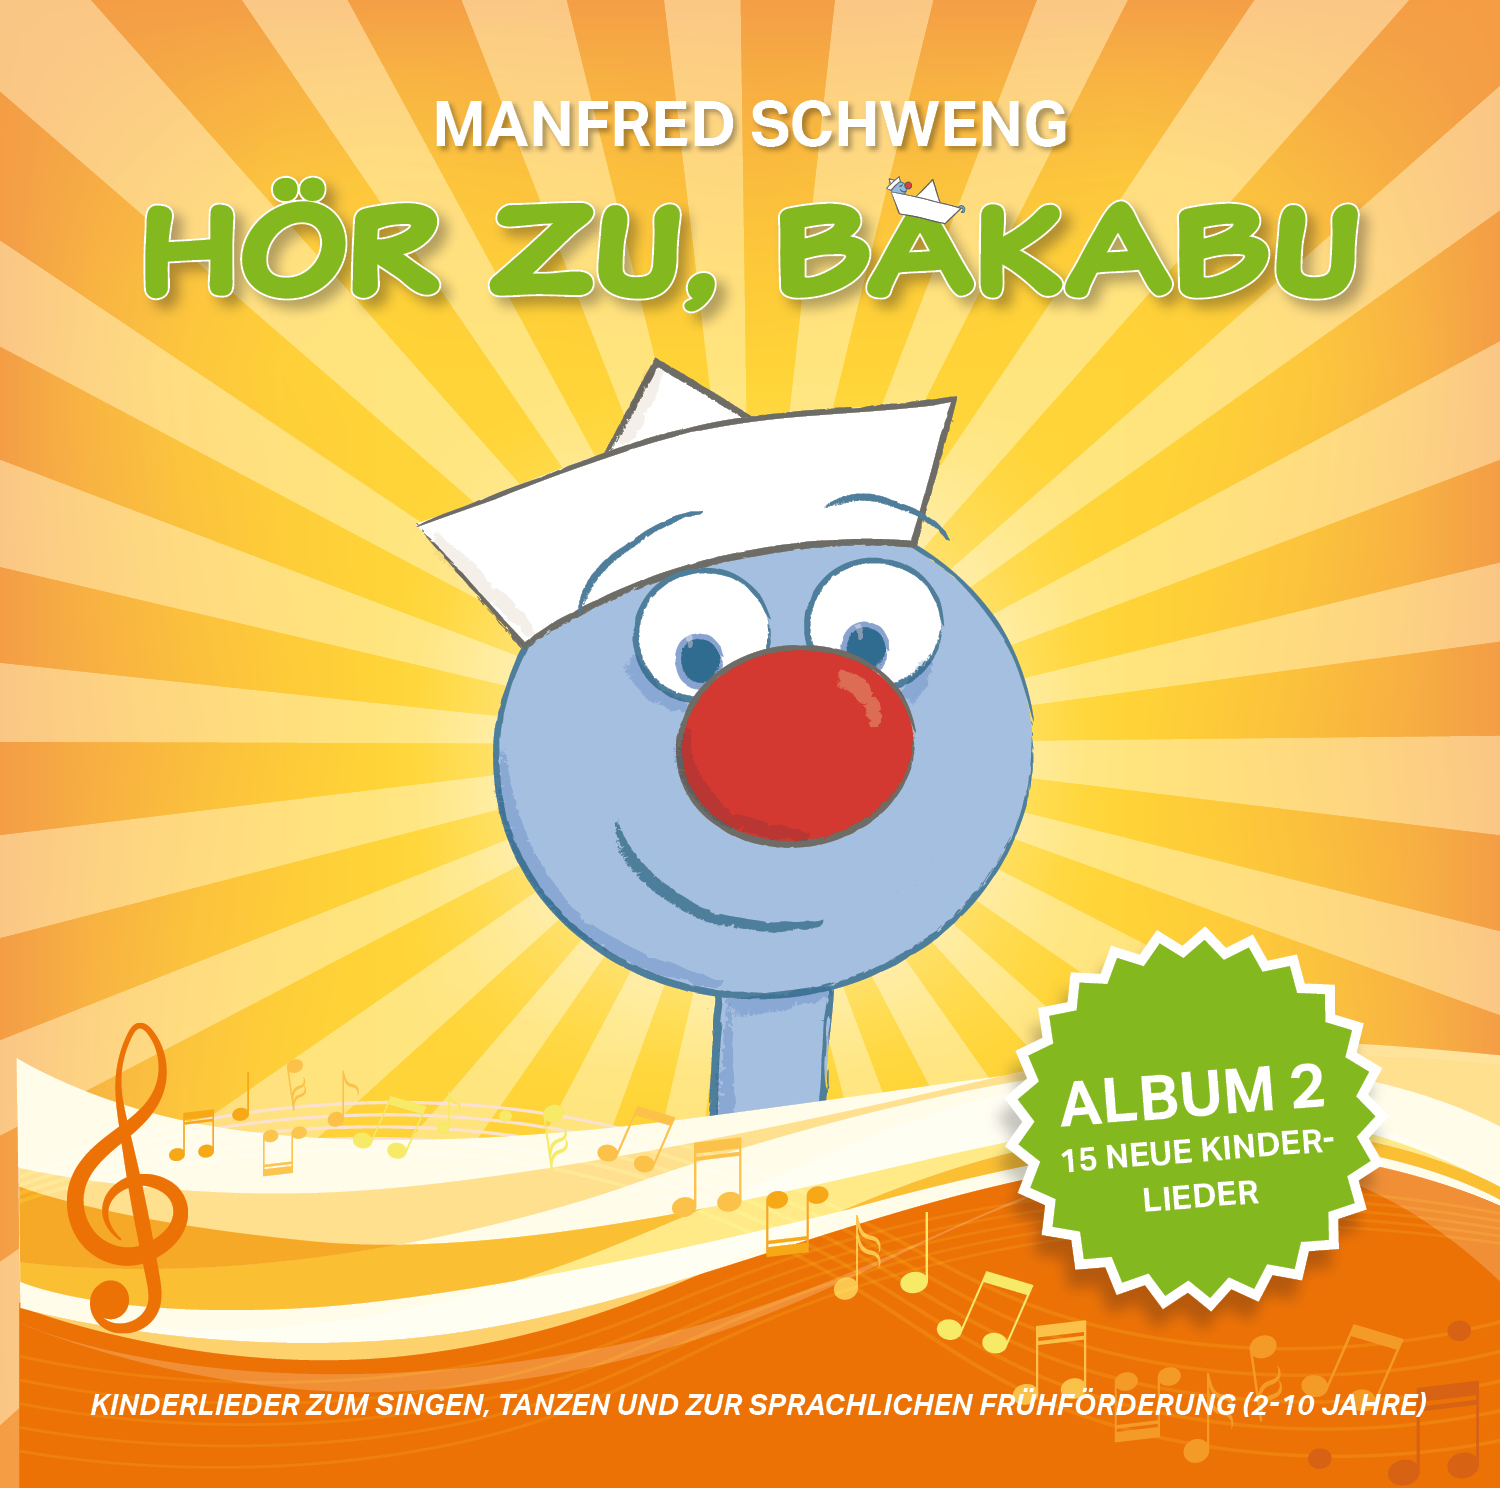 CD Cover Bakabu Album 2